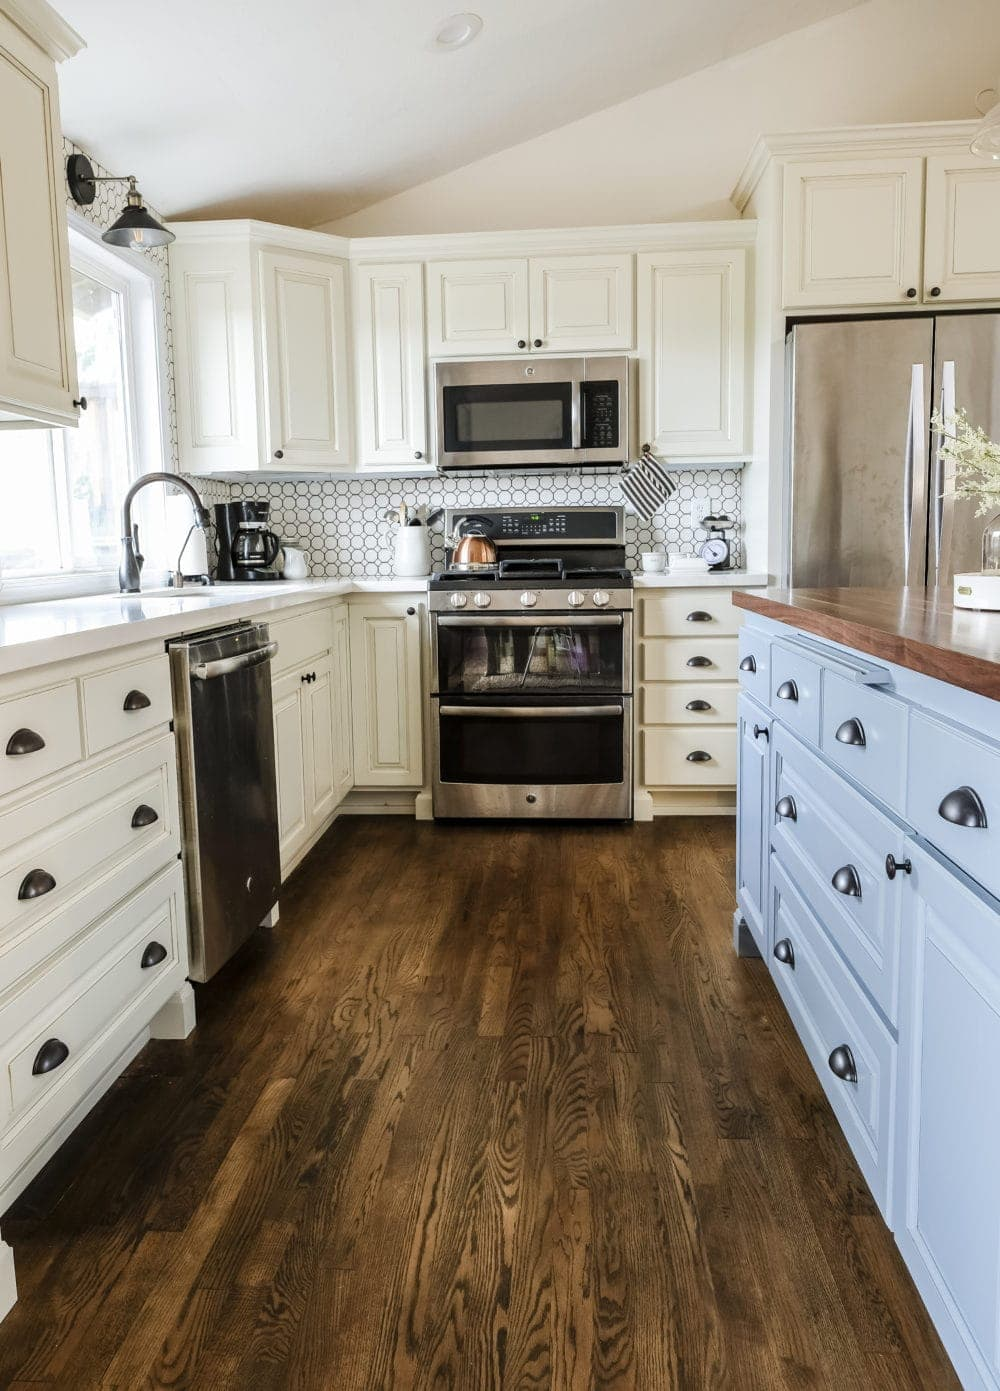 Kitchen with white cabinets and a blue kitchen island with farmhouse finshes and hardwood floors